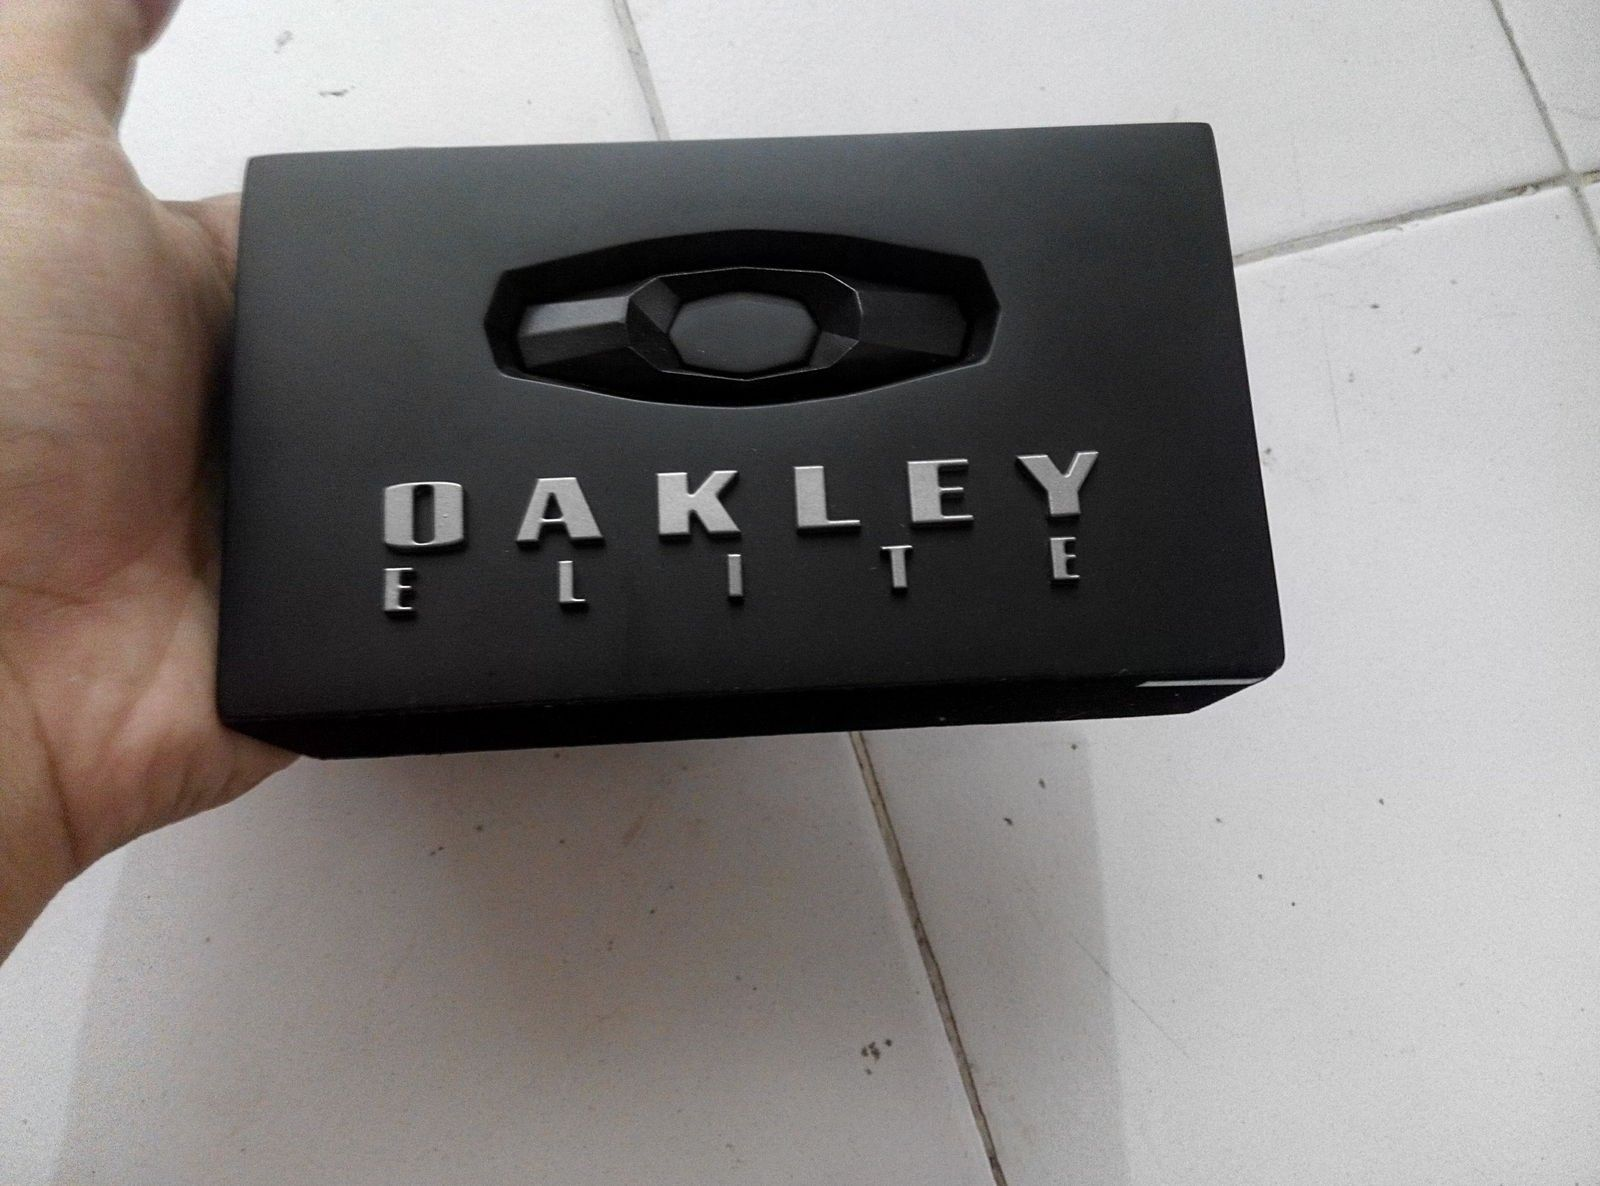 Oakley elite block - IMG_20150814_132117_HDR.jpg